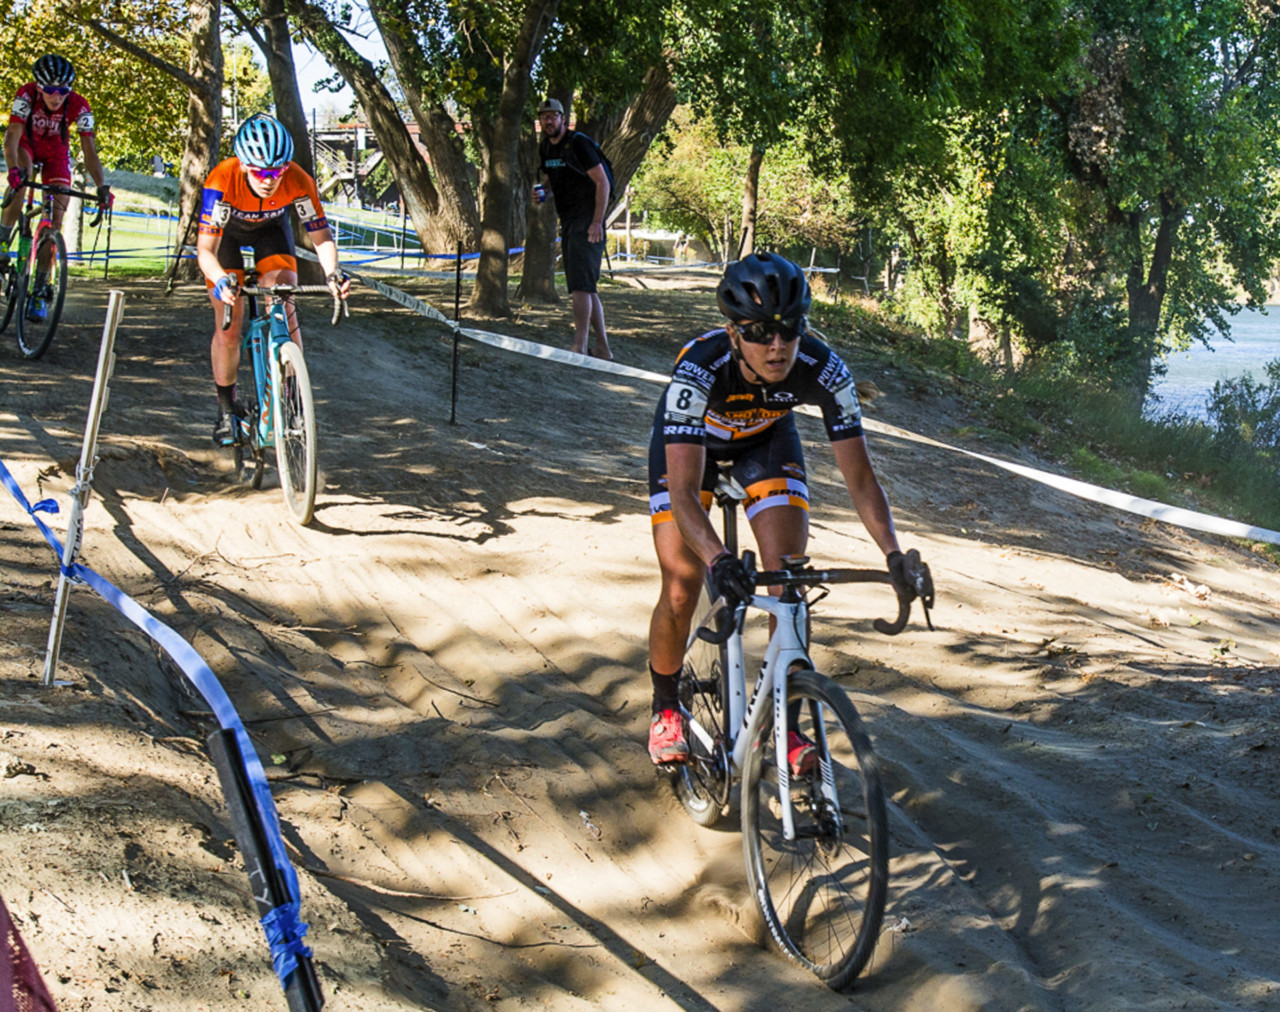 Raylyn Nuss rode strong all afternoon on Sunday. 2018 West Sacramento Cyclocross Grand Prix Day 2. © L. Lamoureux